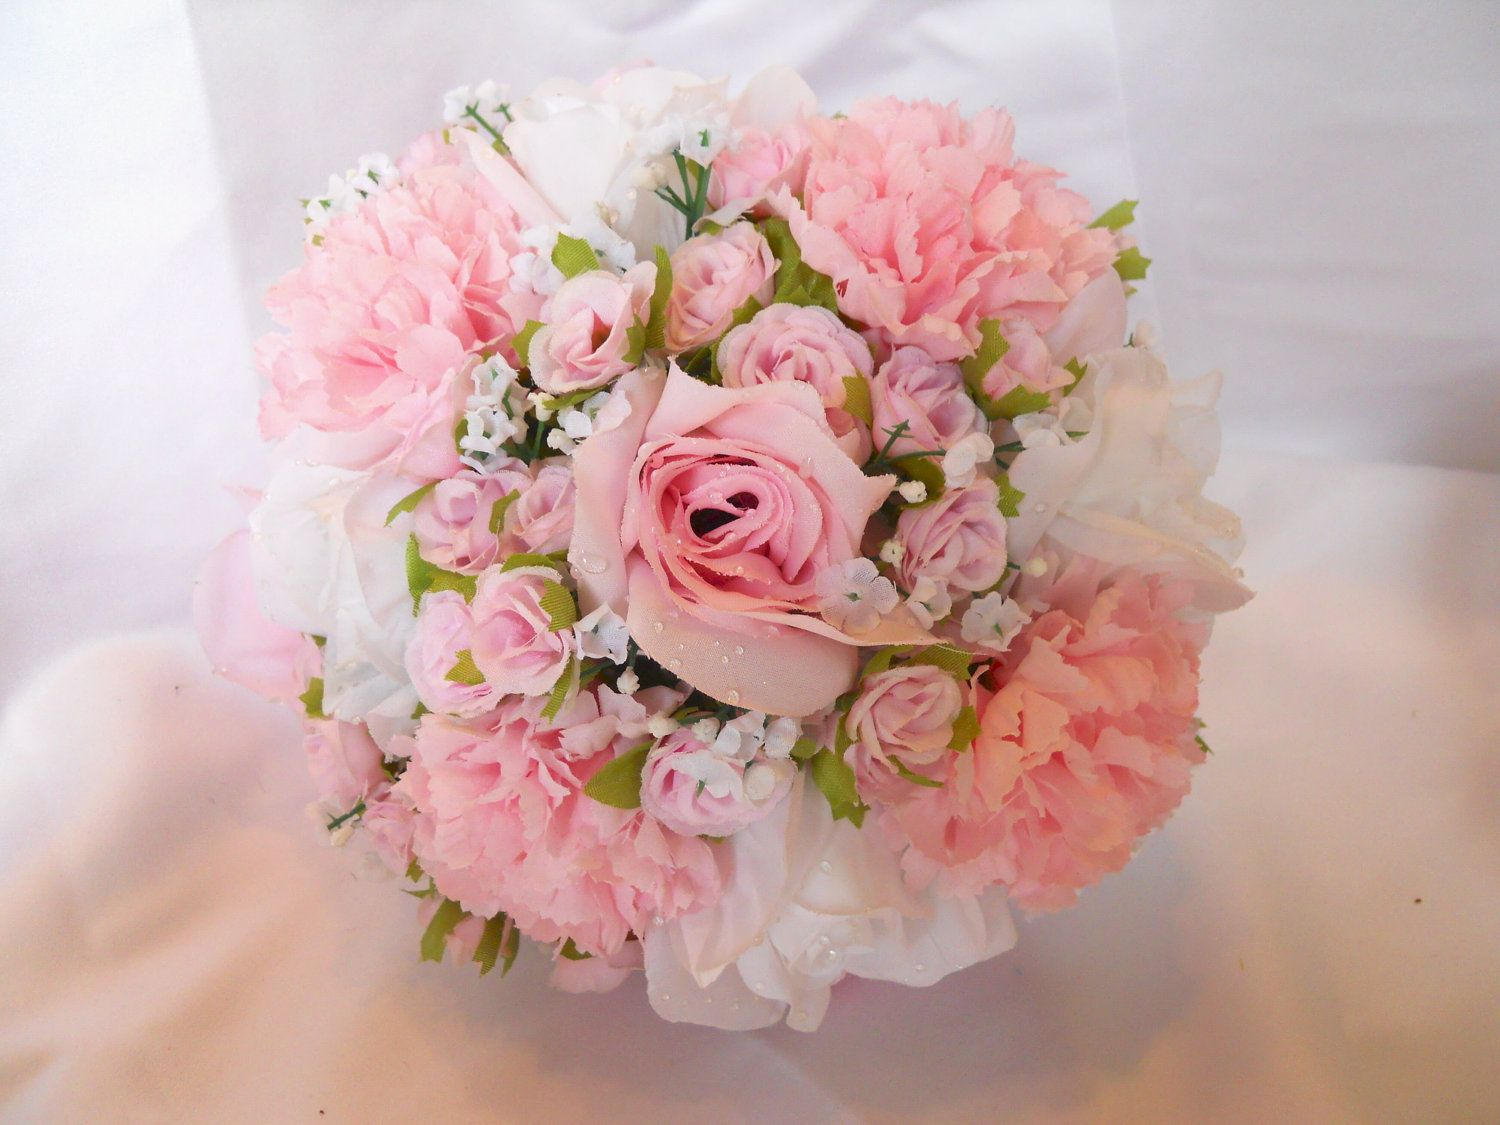 Victorian Wedding Bridal Bouquet Package 6 Pc Soft Pink ...